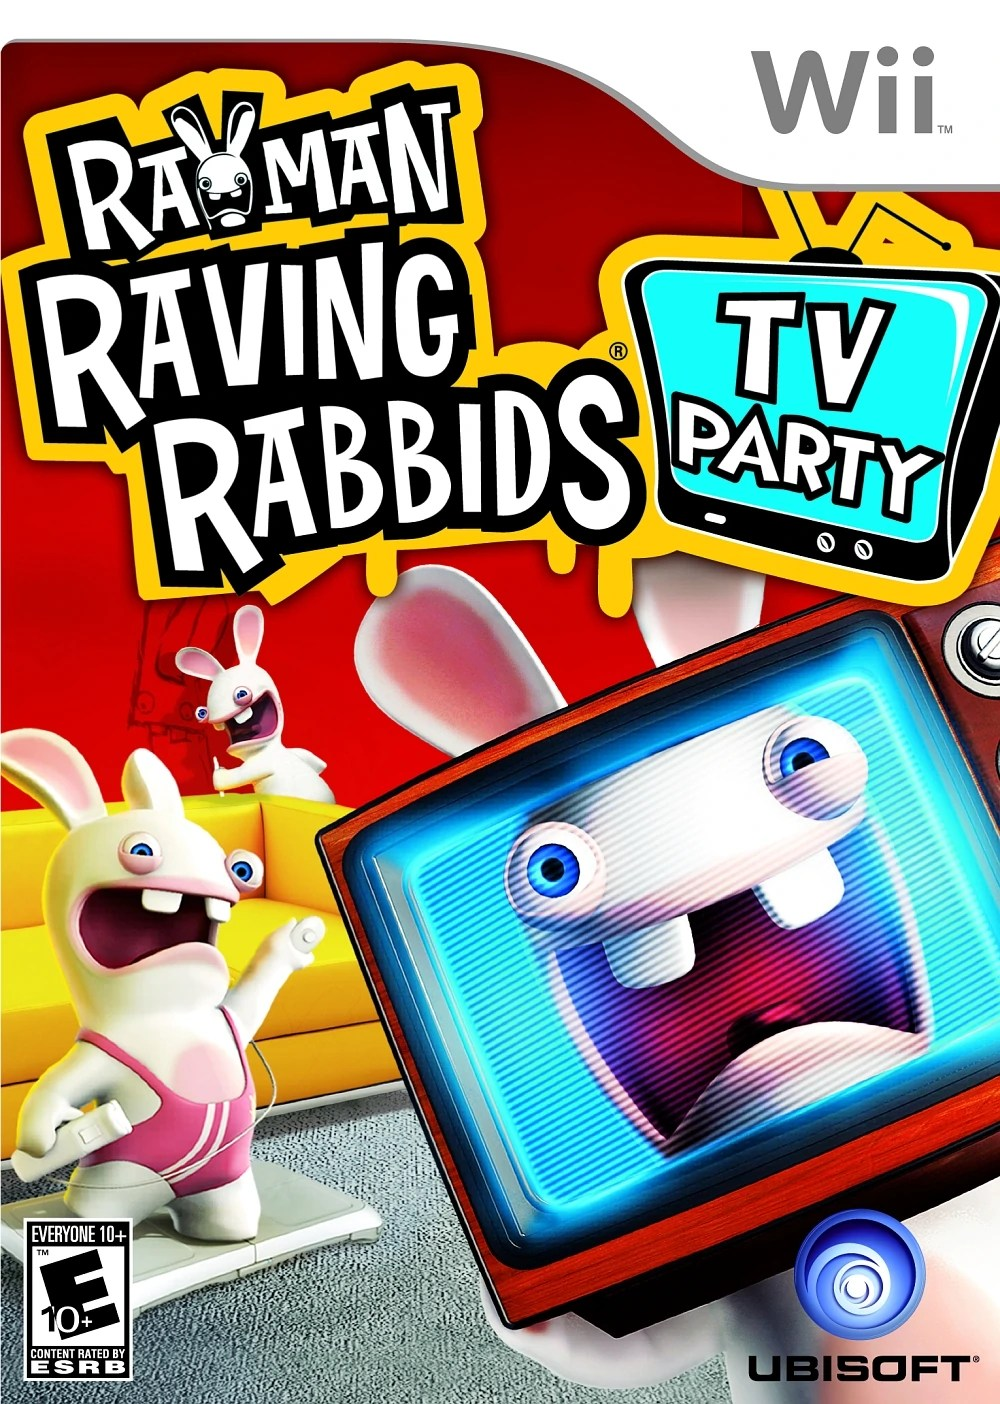 Rayman Raving Rabbids TV Party Wii Classic Game Room